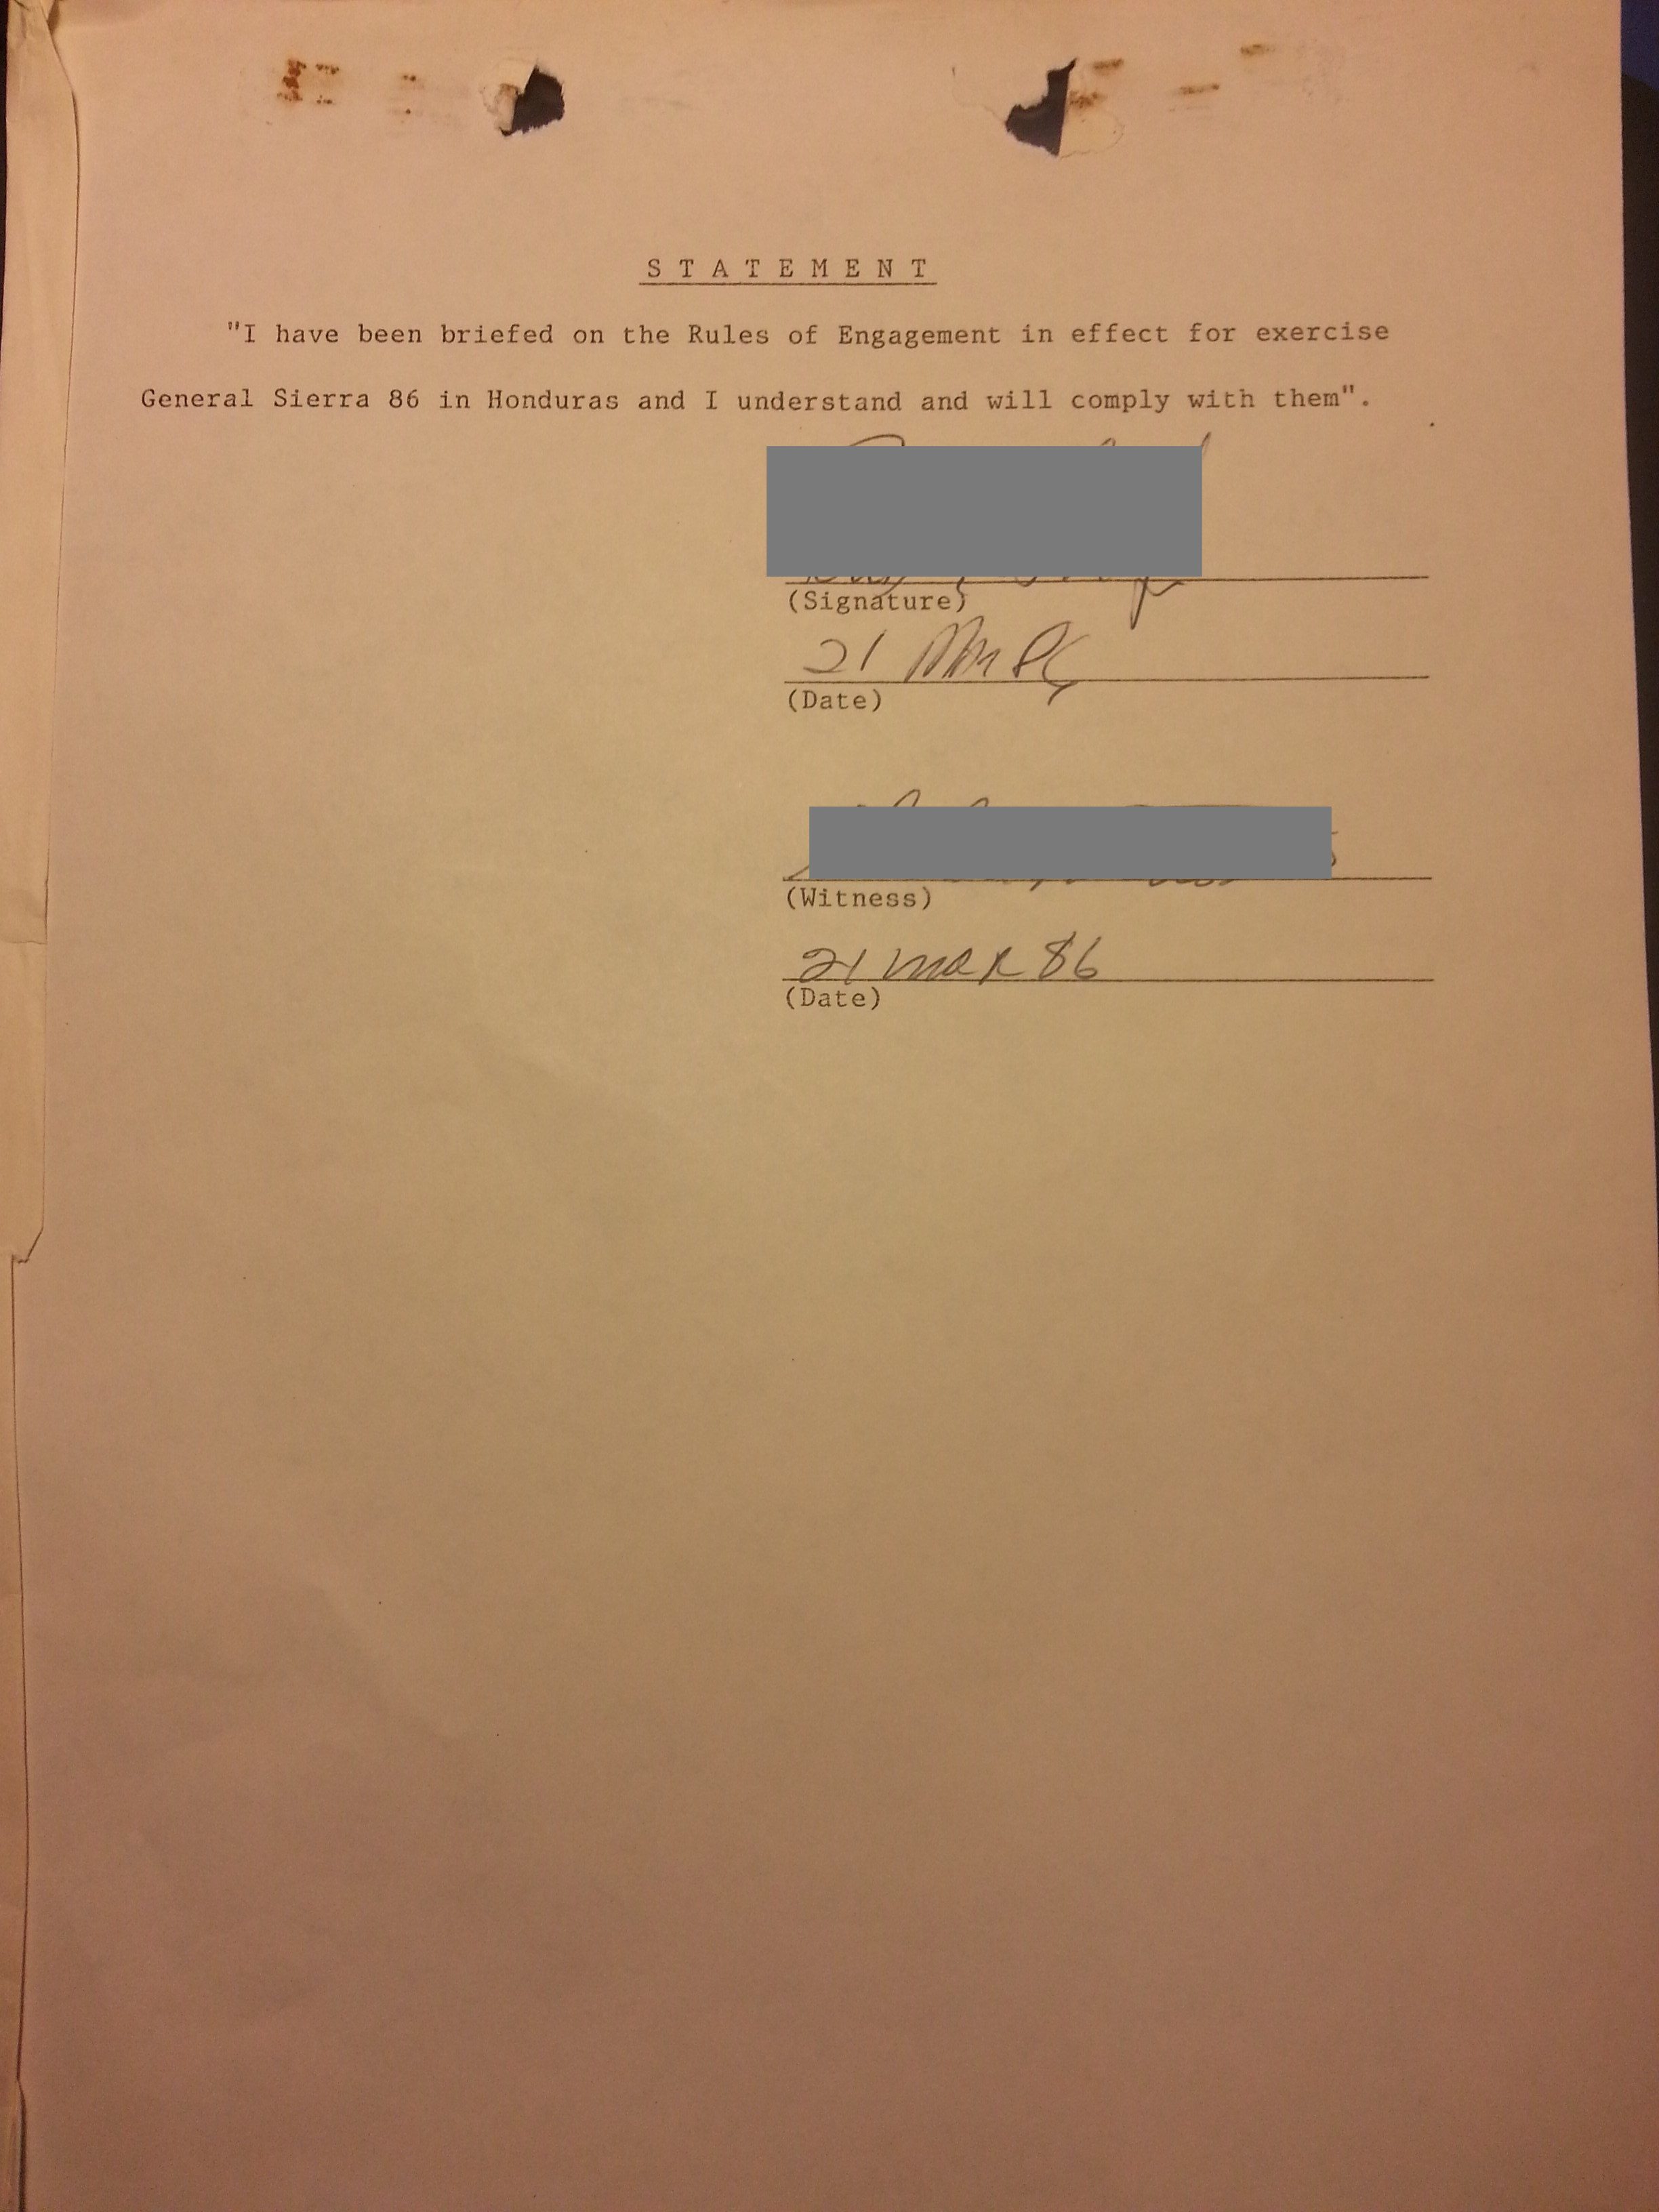 1986-3-21-statement-rules-of-engagement-1986-honduras-redacted